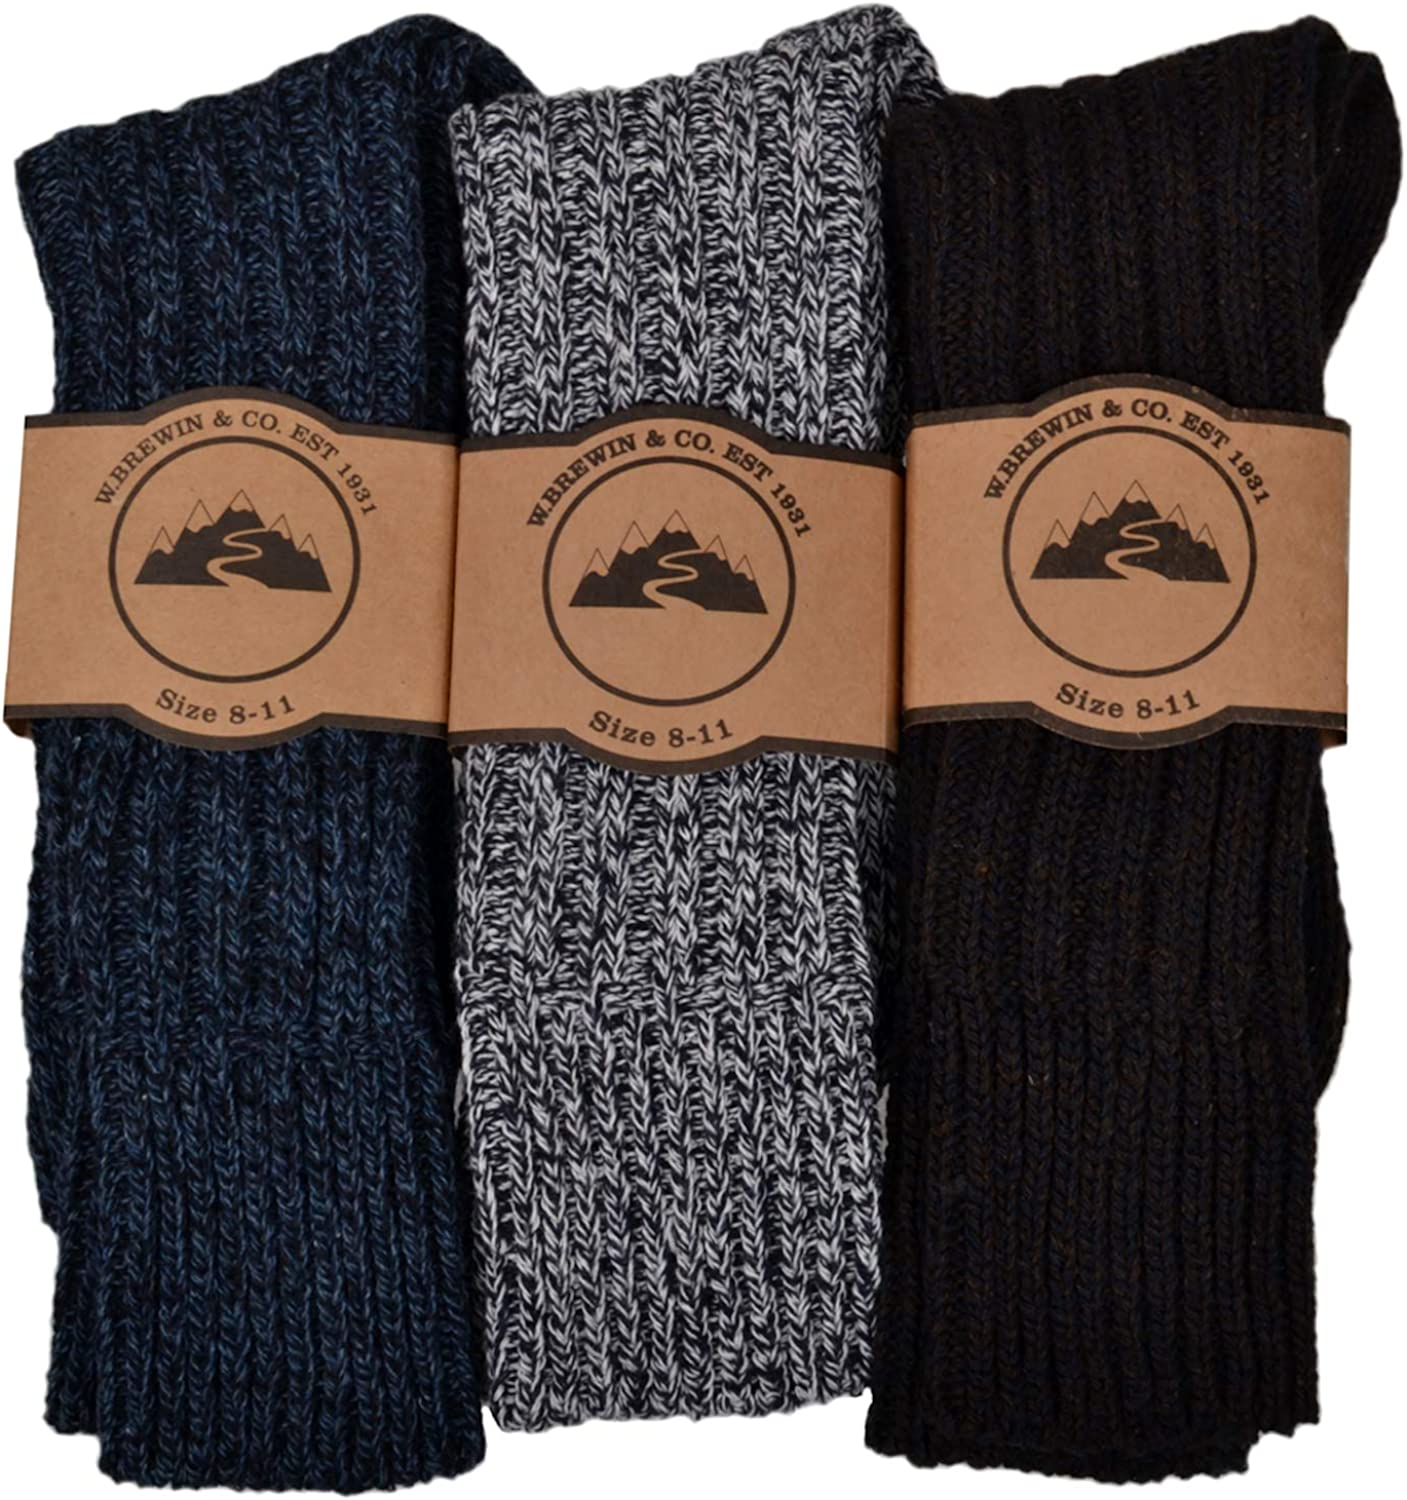 Wool Blend 3 Pairs of Mens Thick /& Warm Heavyweight Socks